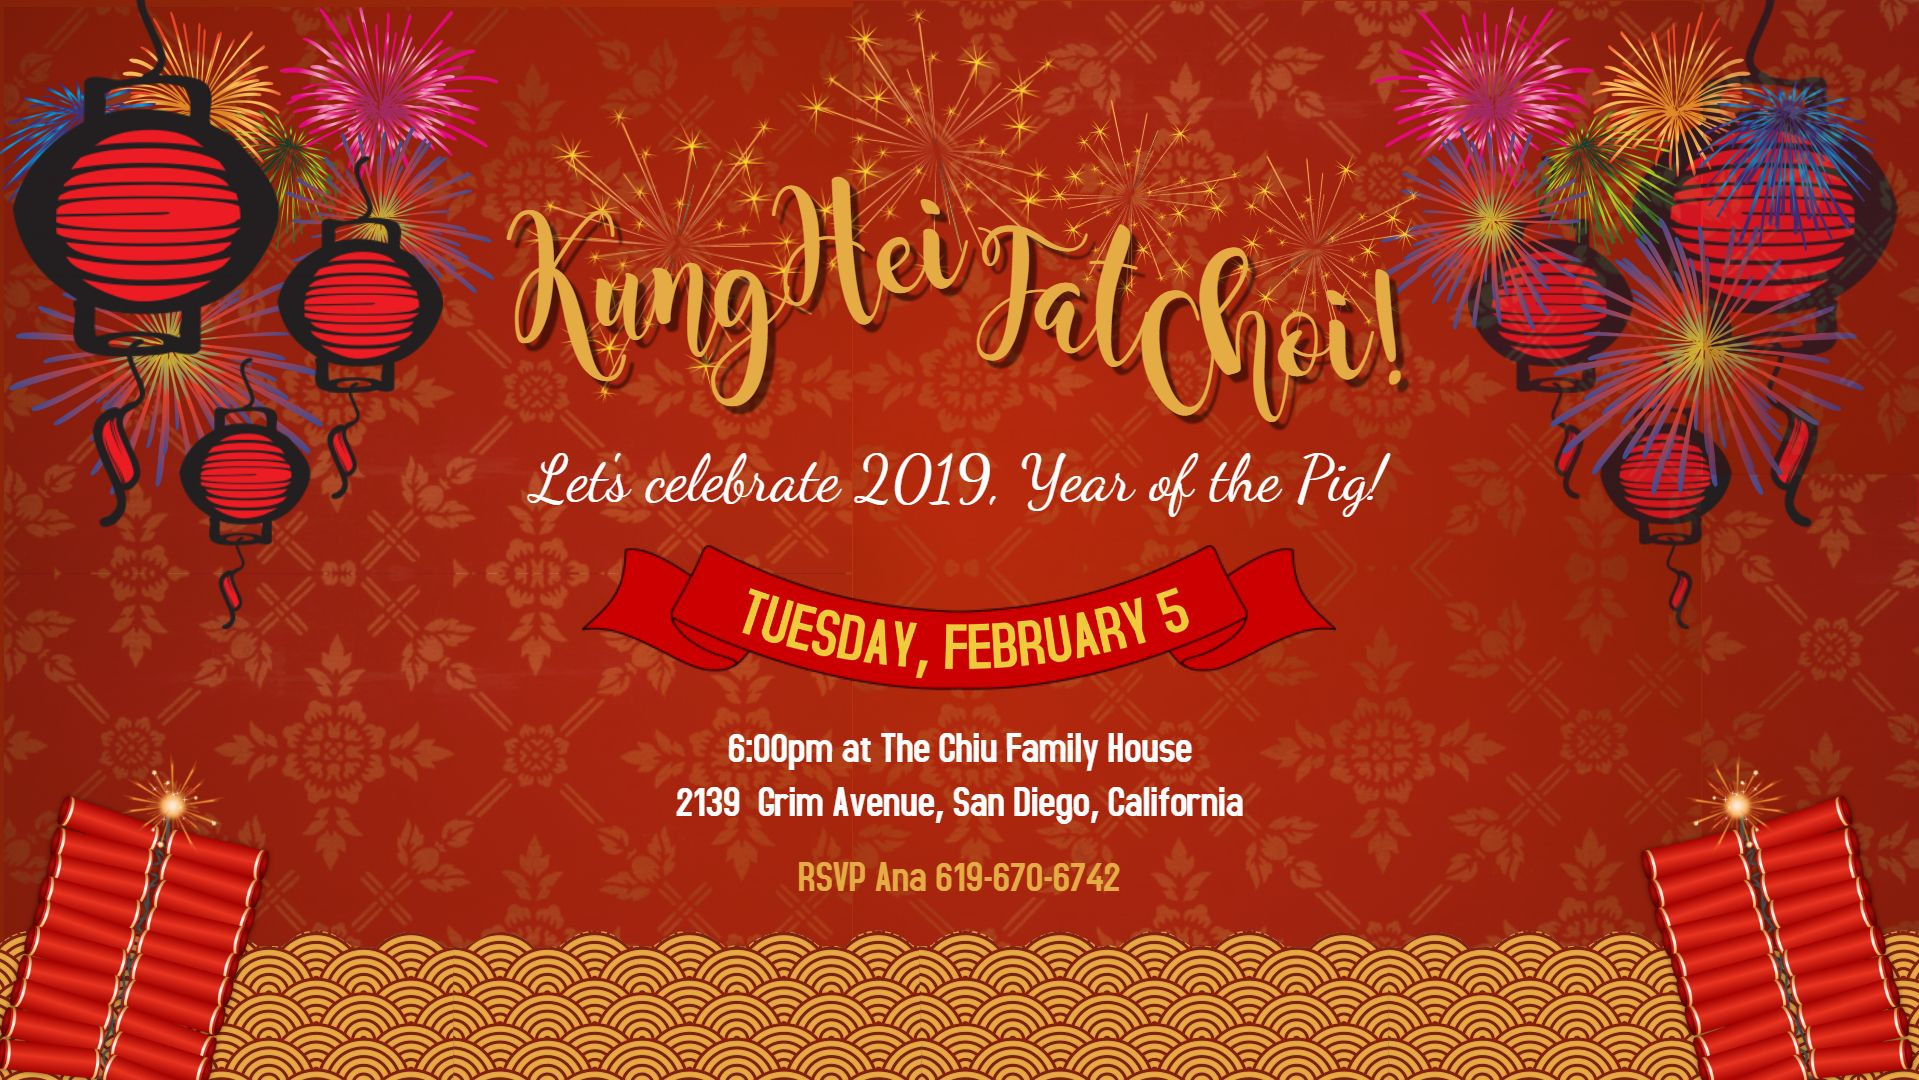 Chinese New Year Traditional Party Invitation Poster Chinese New Year Fireworks Bbq Party Invitations New Year Fireworks